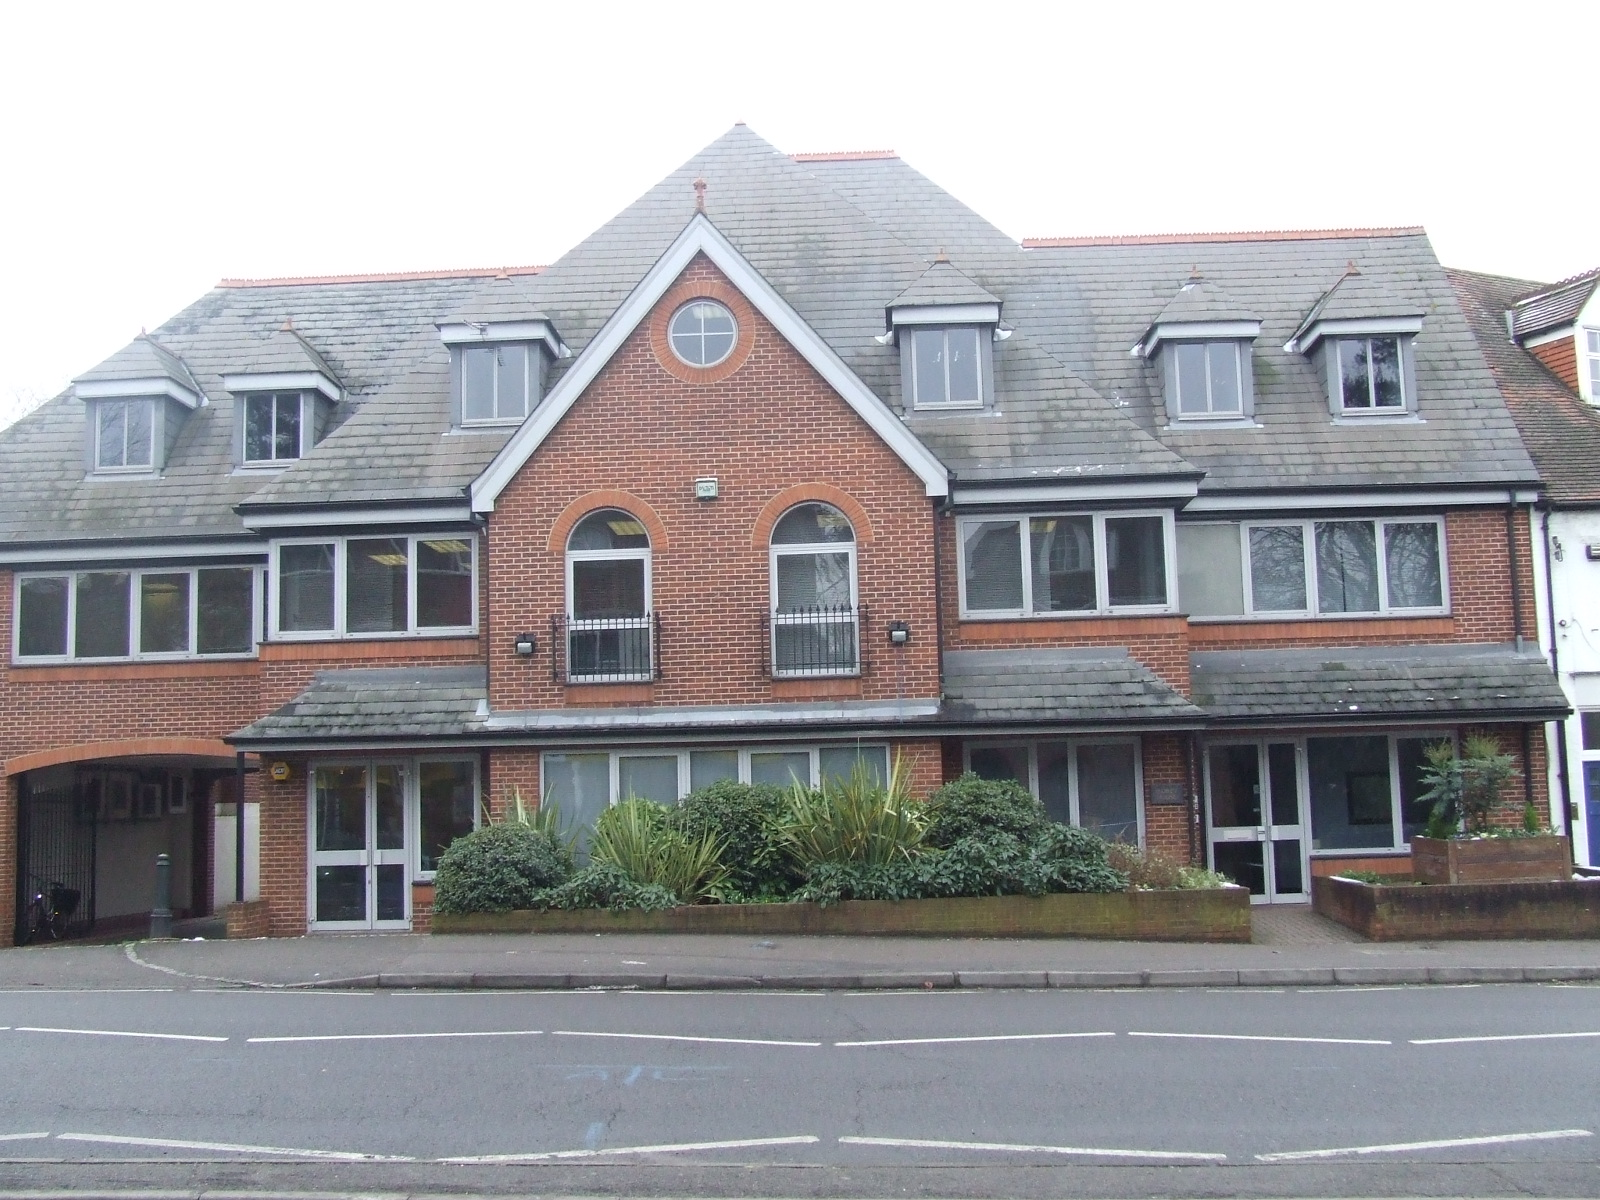 HARLEY HOUSE (Ground floor offices), 94 Hare Lane, CLAYGATE - LETTING